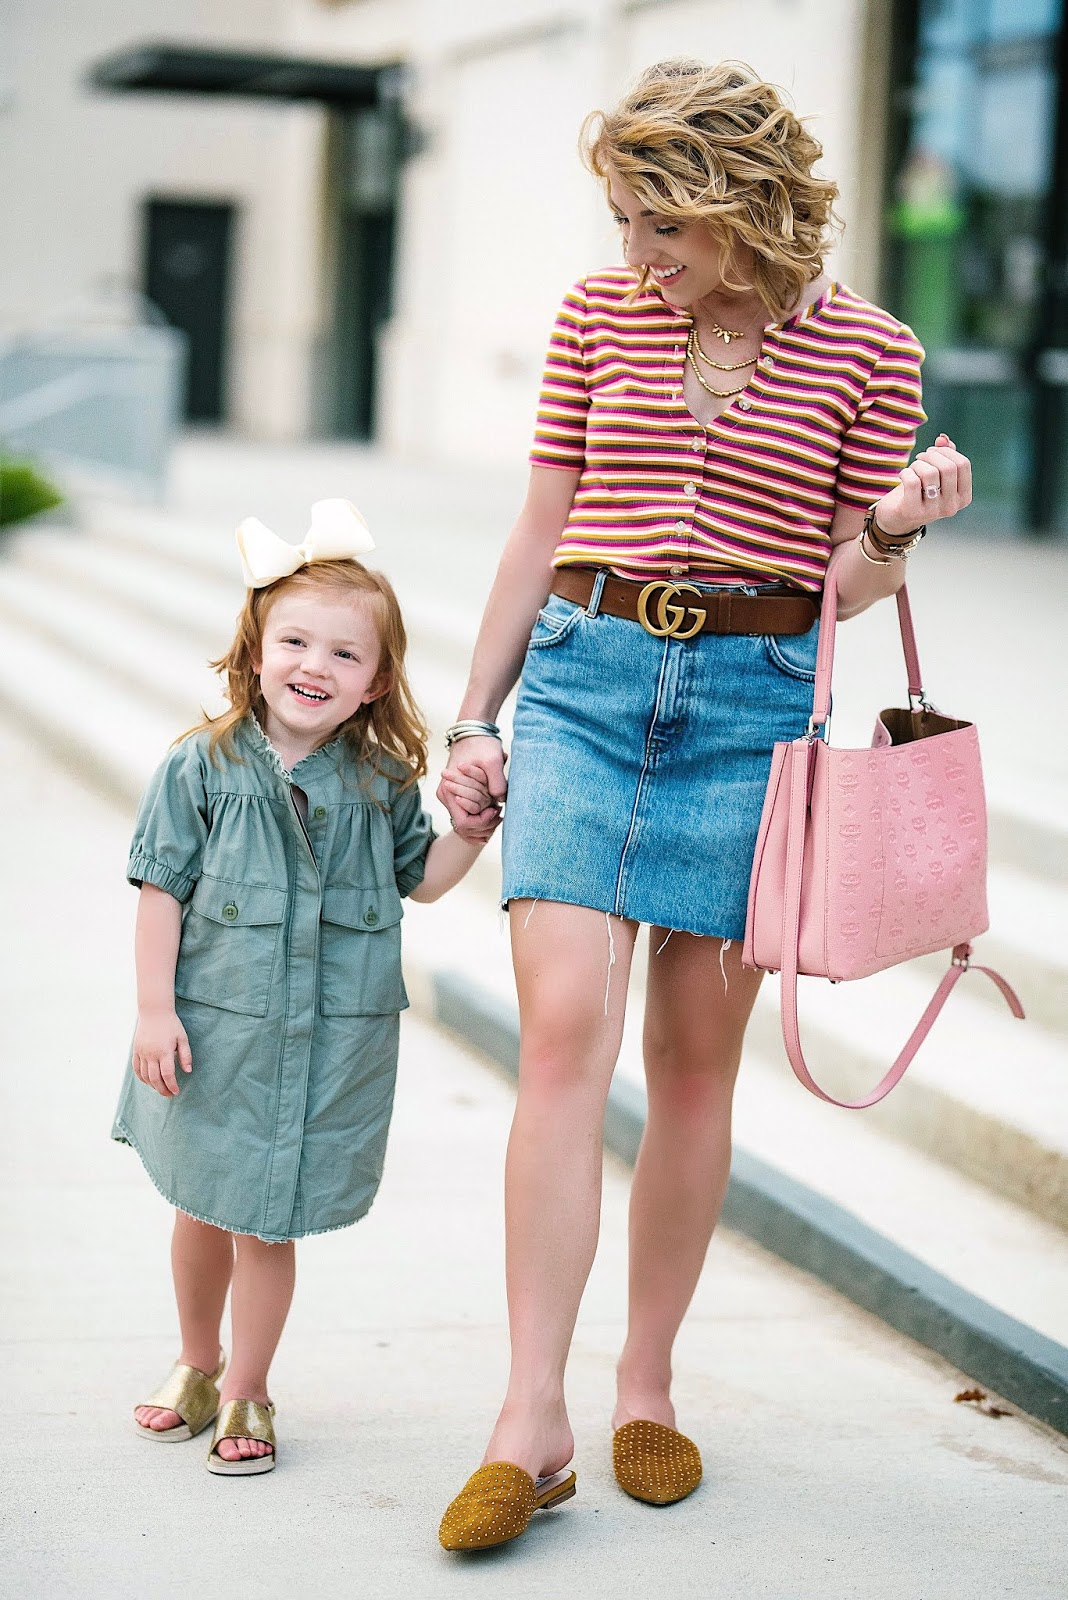 Transition to Fall Looks for Both Moms and Kids - Something Delightful Blog